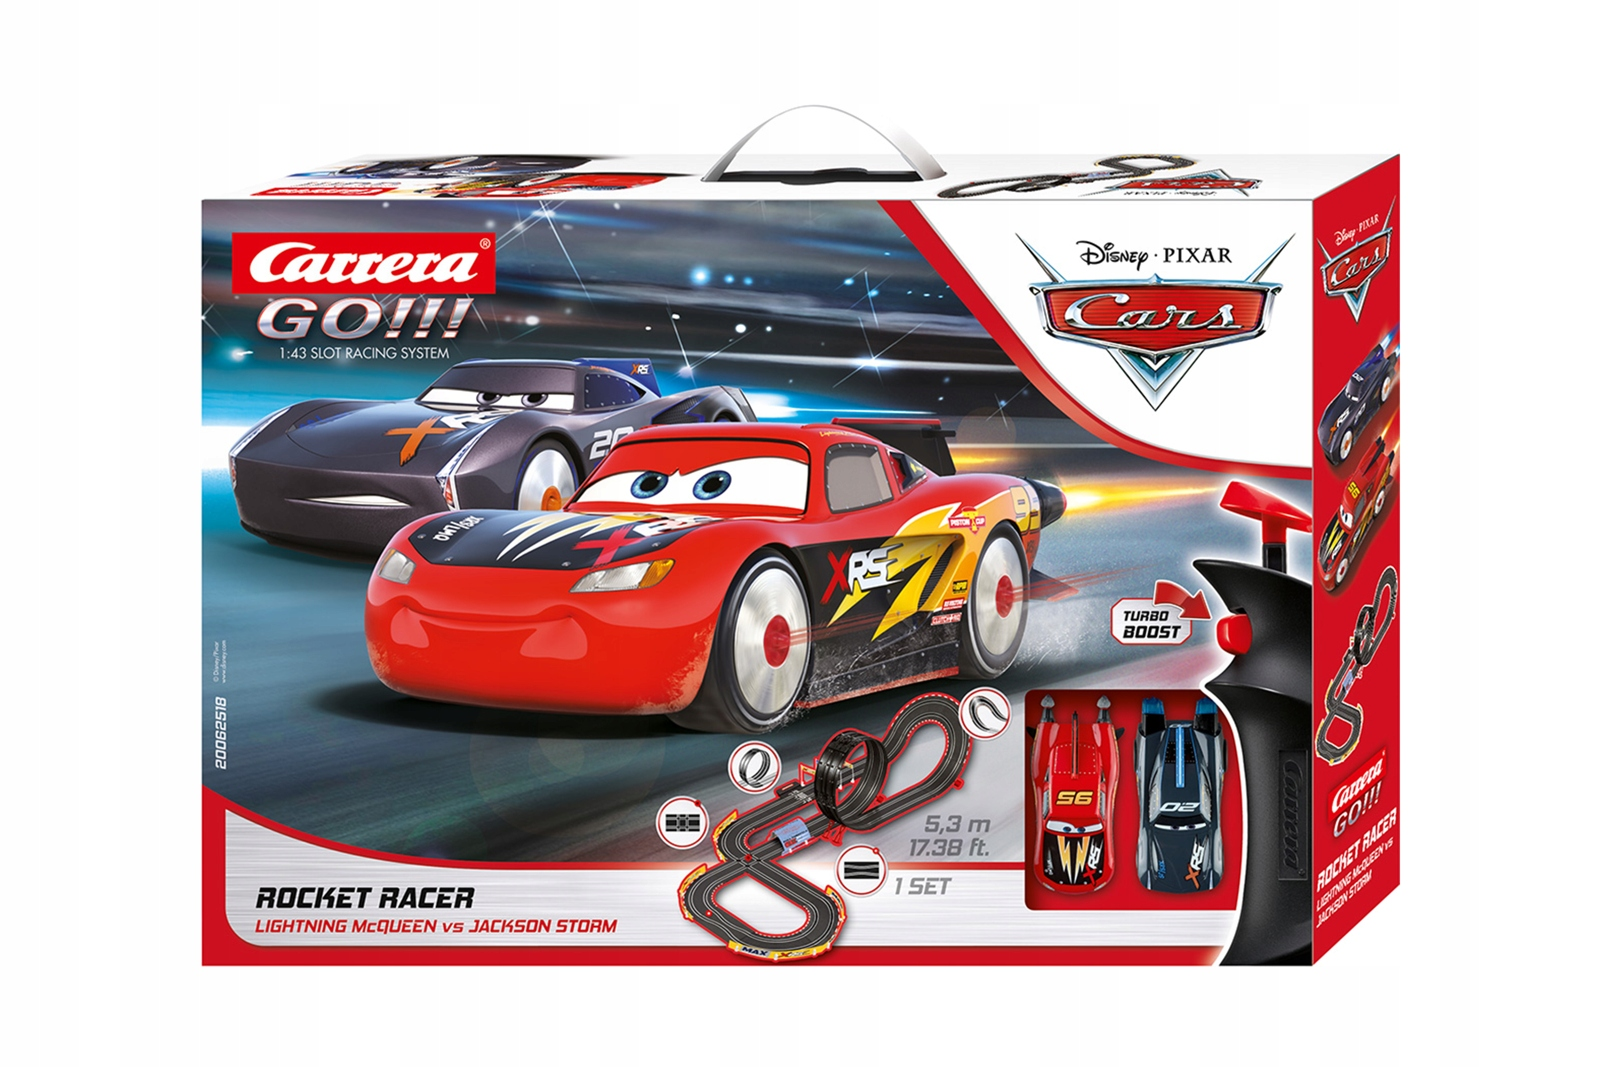 Automobily Rocket Racer 5,3 m 1/43 Carrera 62518